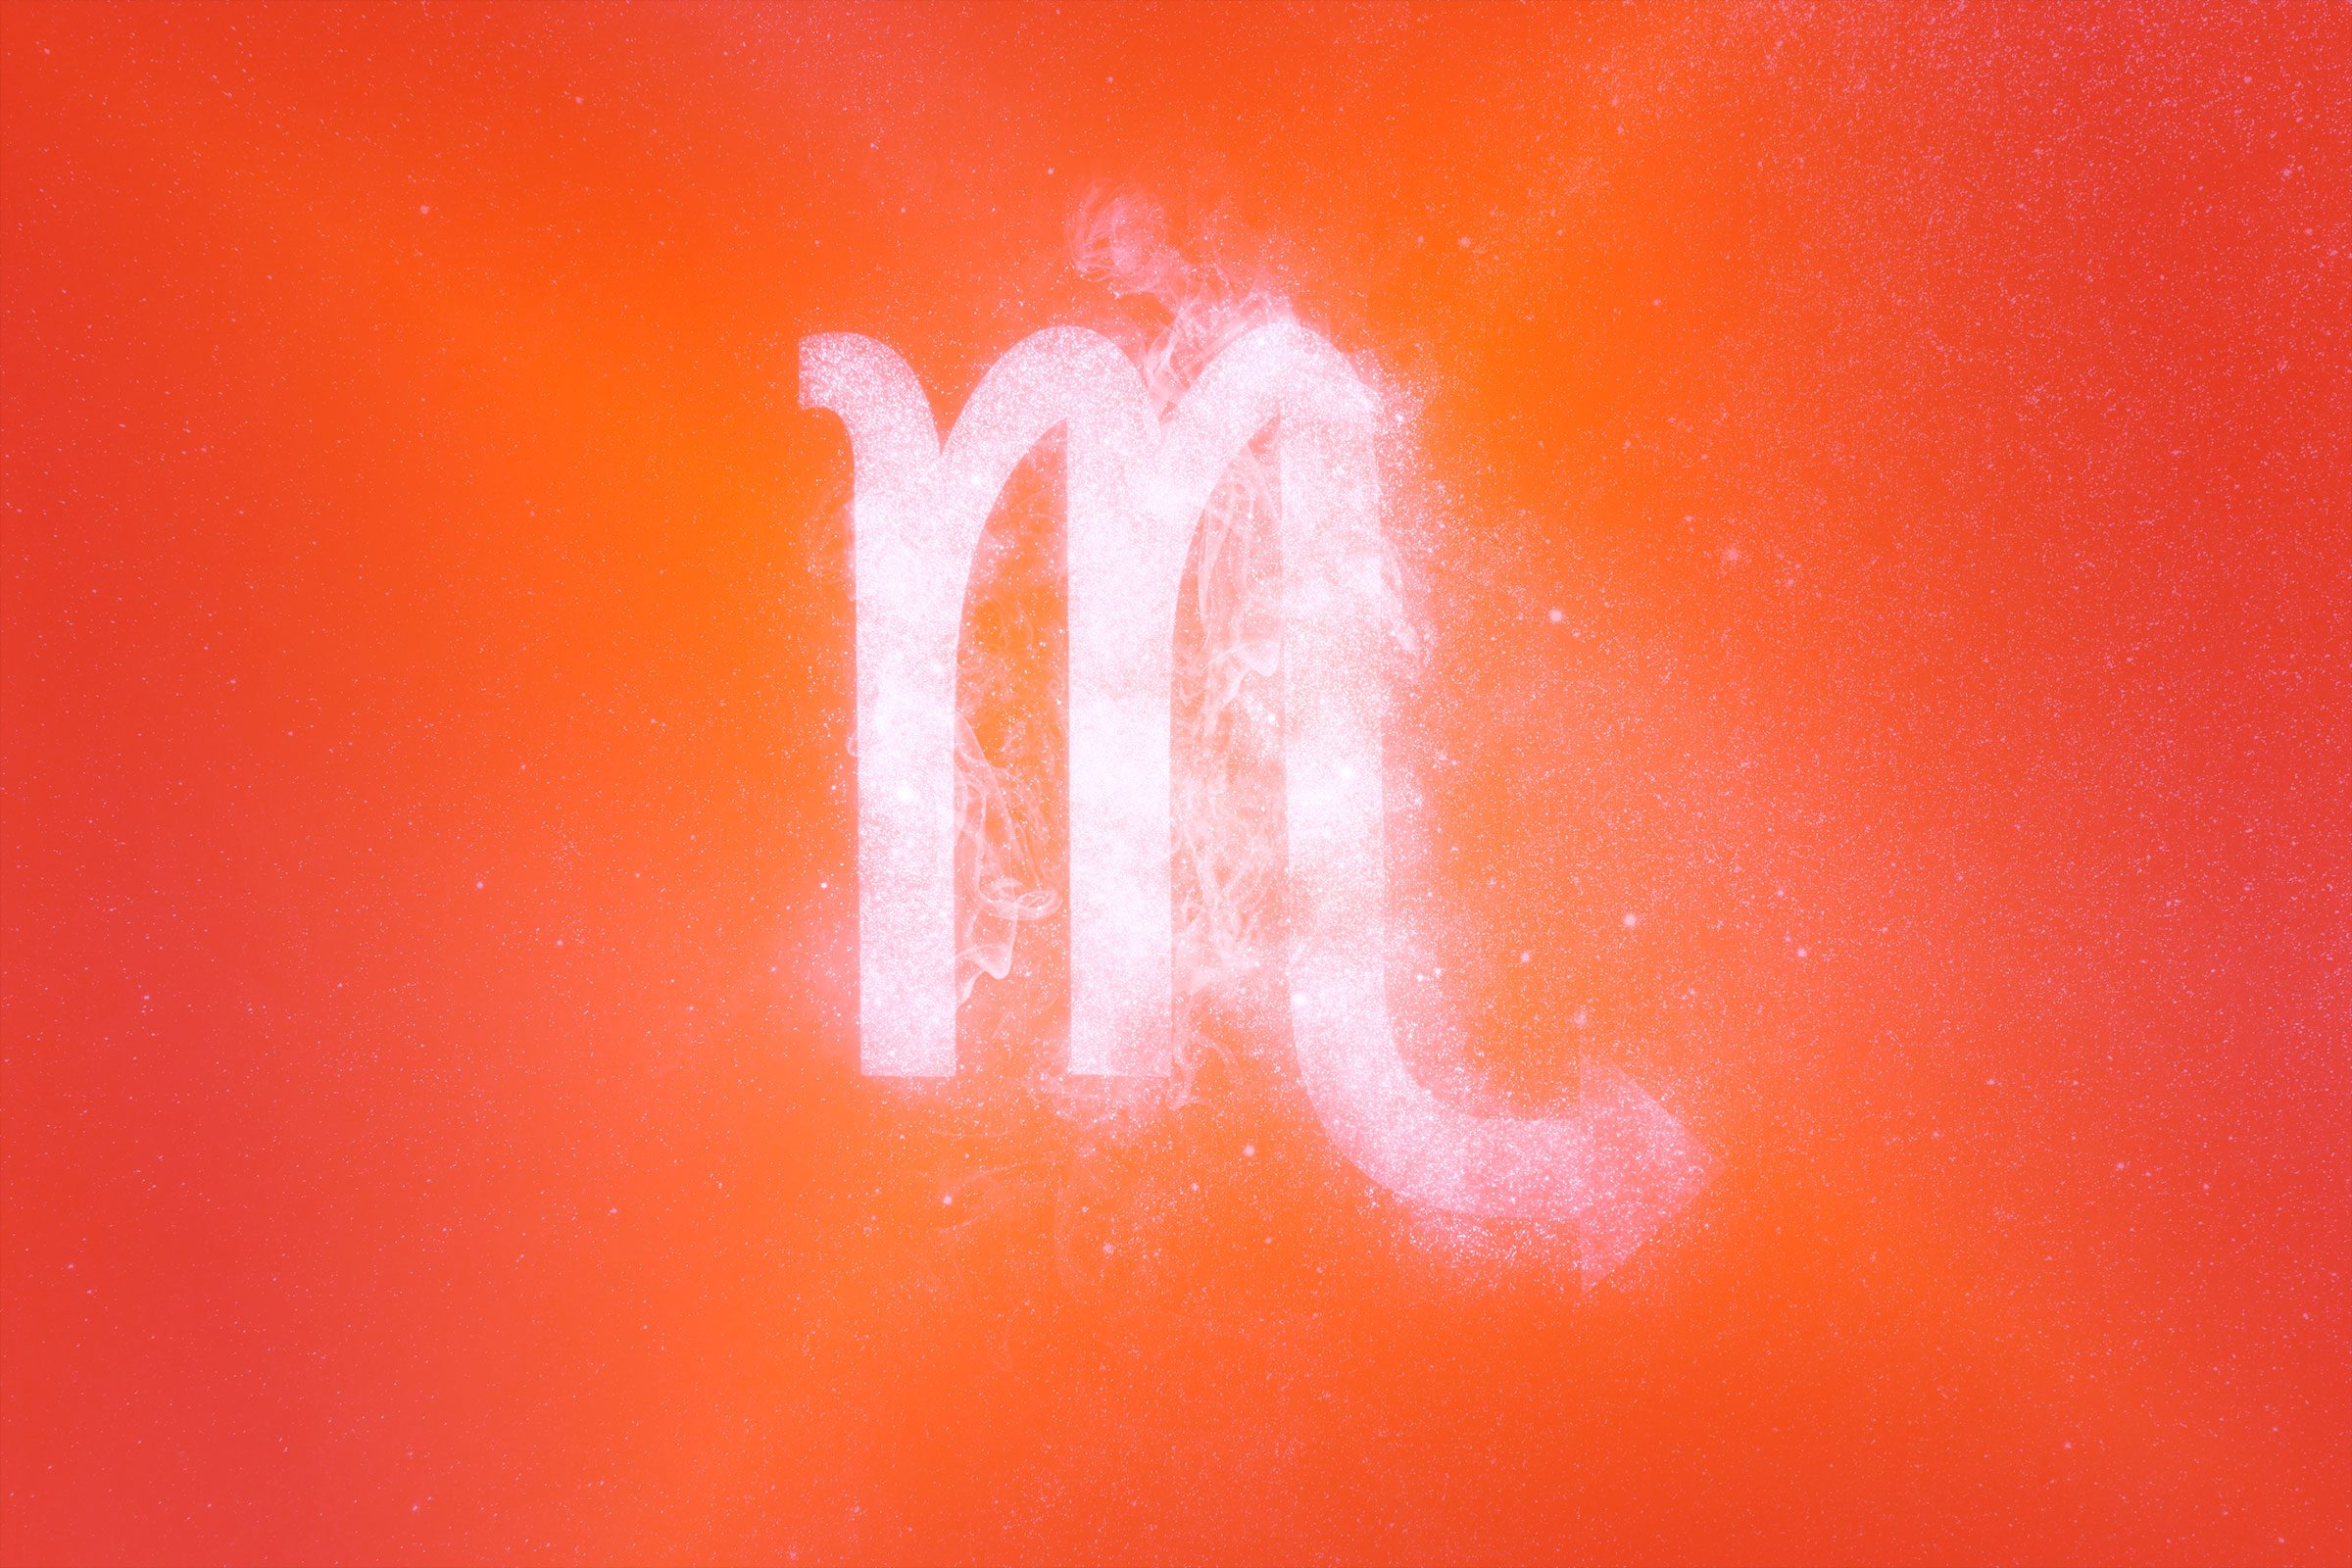 scorpio symbol with red-orange gradient overlay